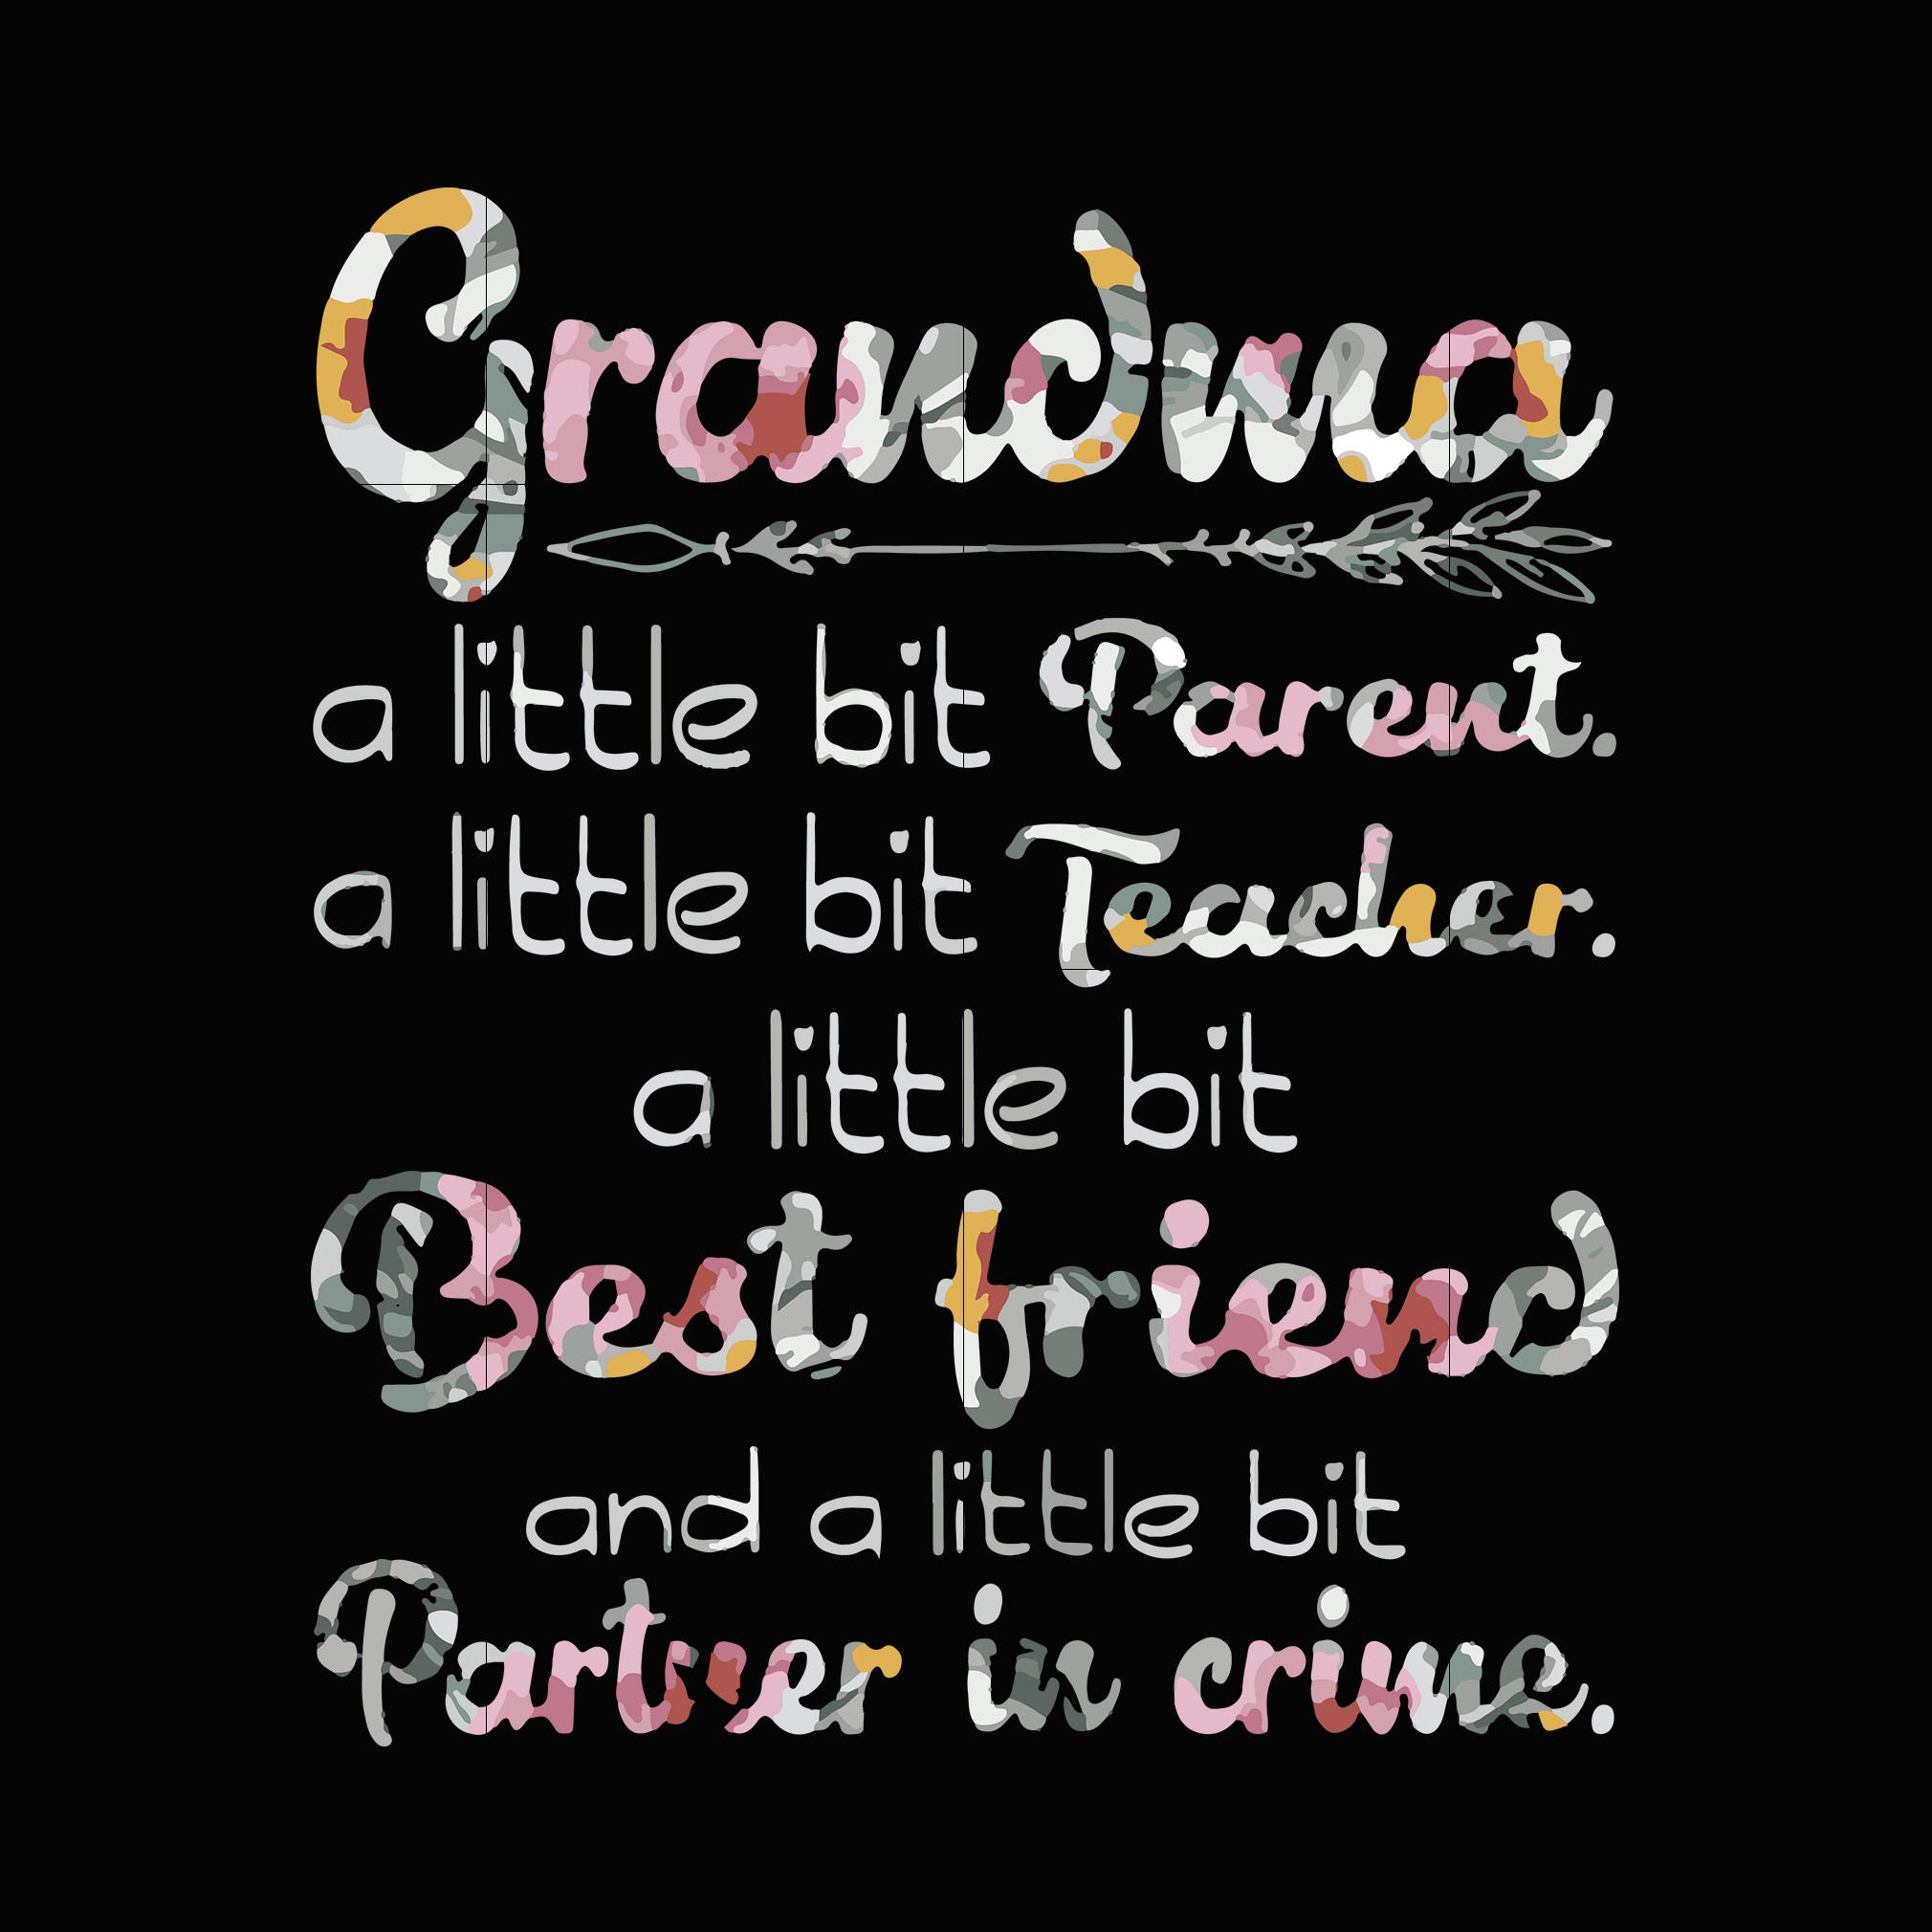 Grandma a little bit parent a little bit teacher a little bit best friend and a little bit partner in crime svg ,dxf,eps,png digital file